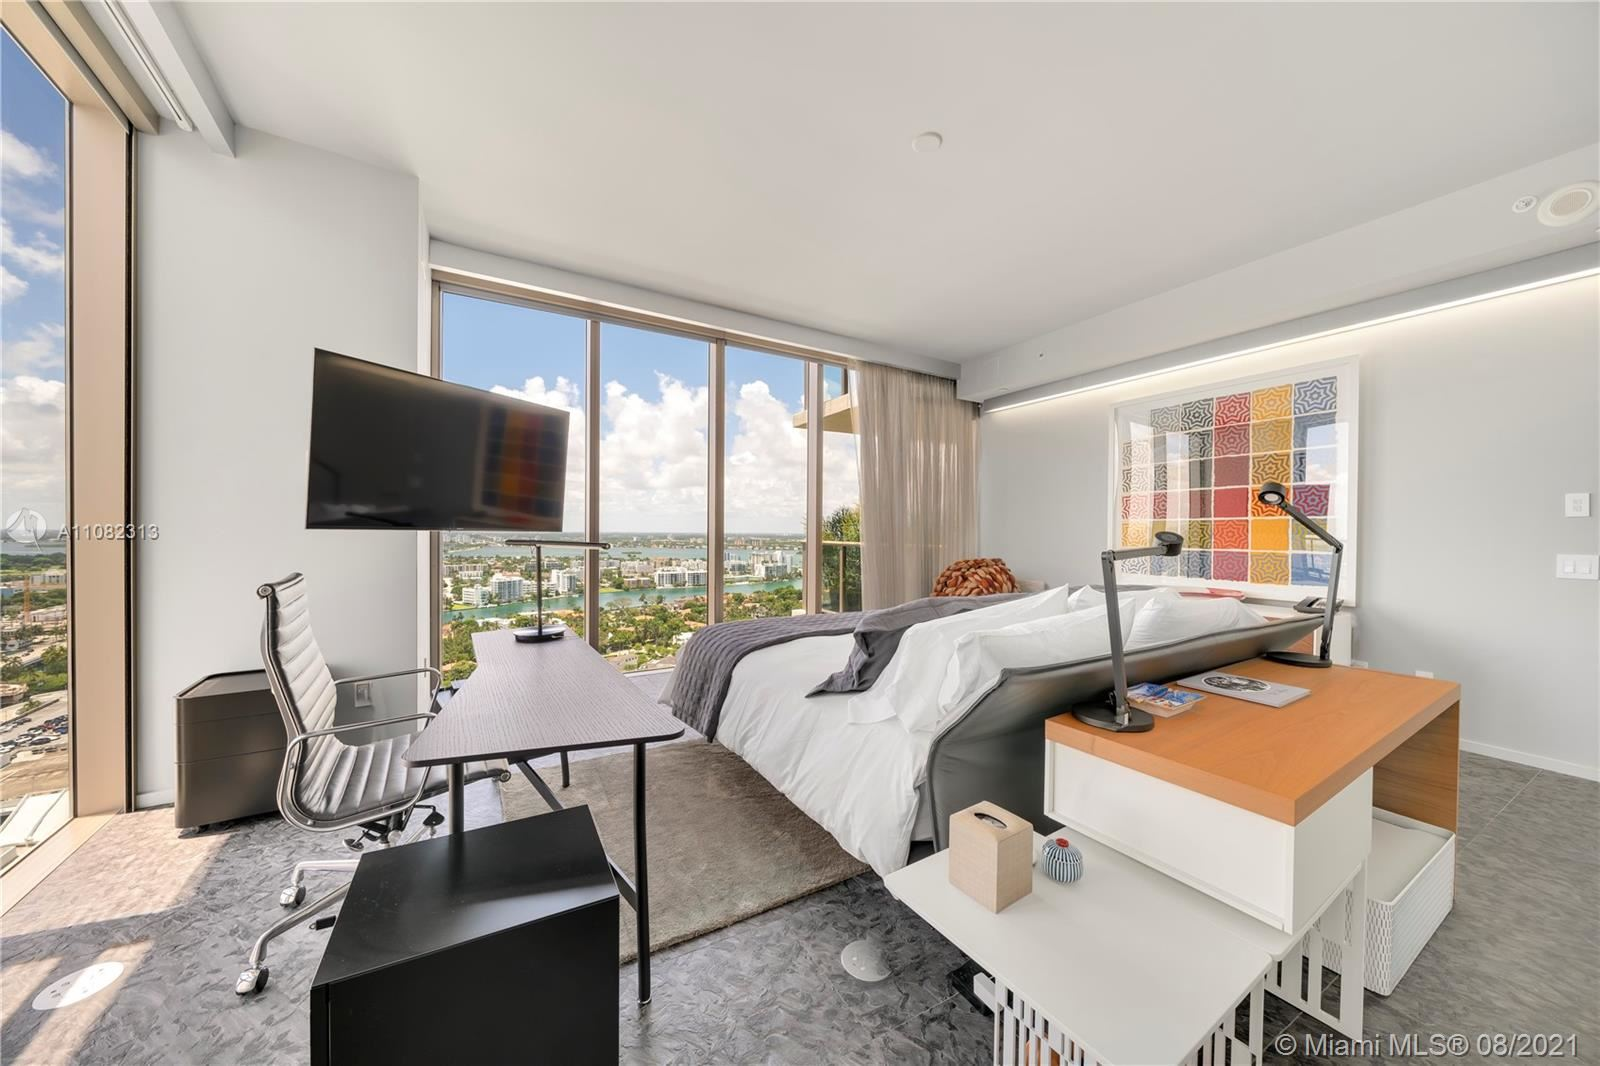 9705 Collins Ave #2505N, Bal Harbour, FL 33154 - #: A11082313